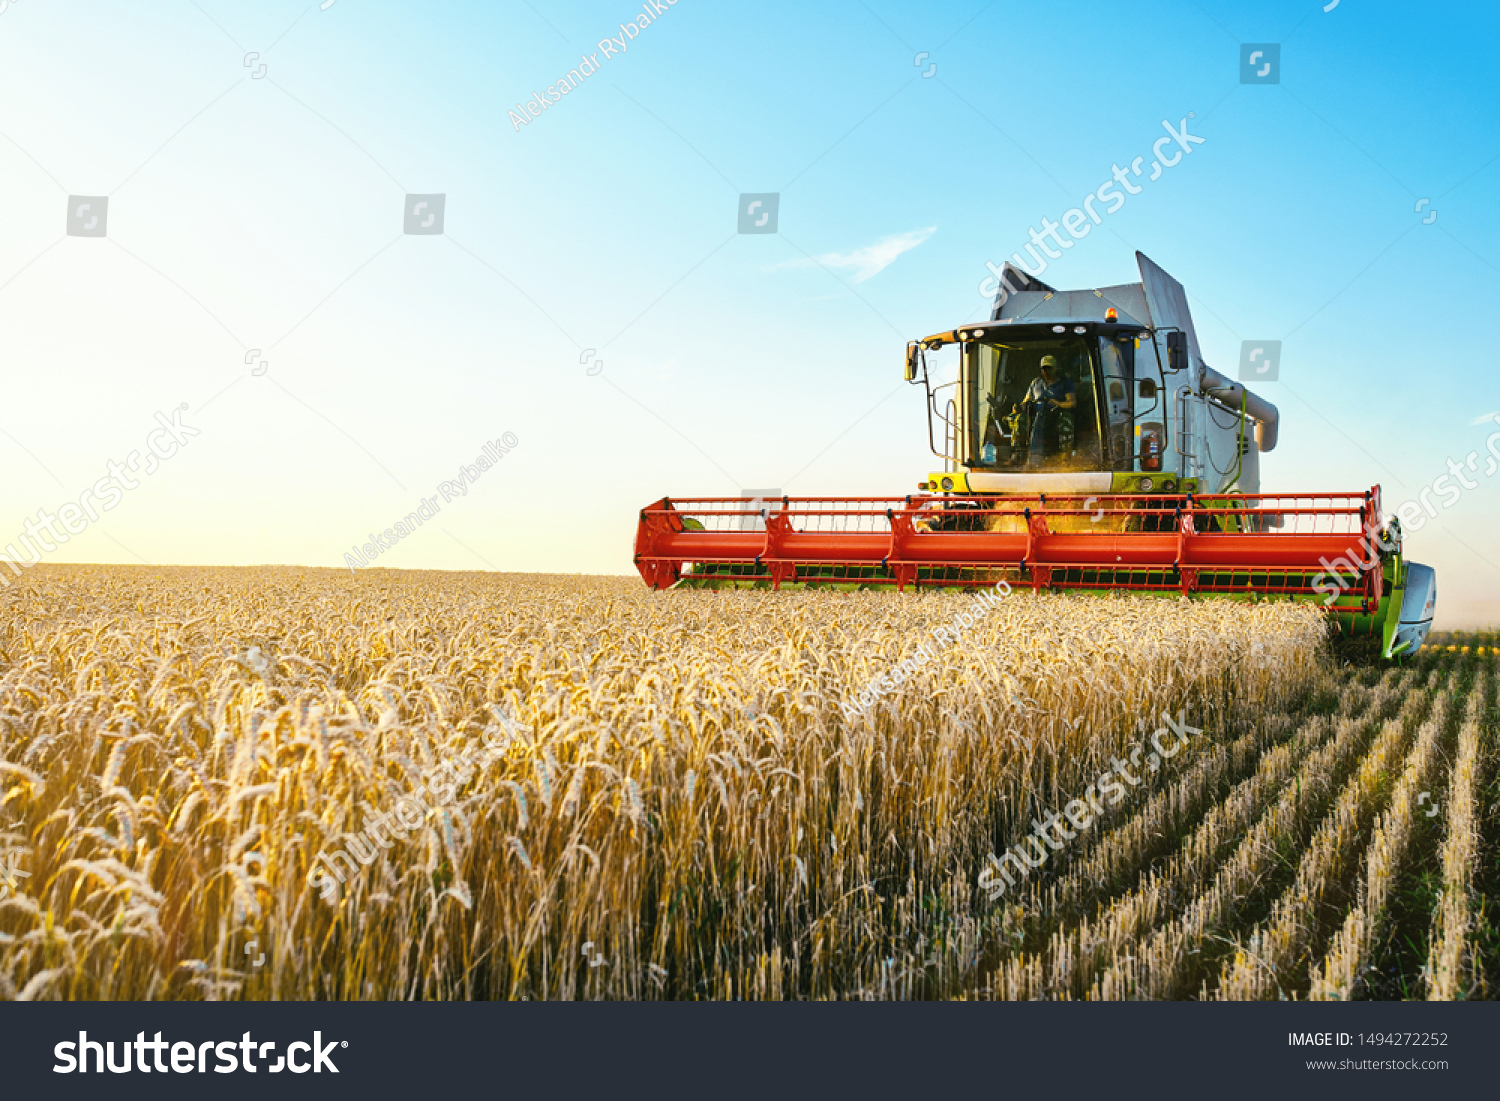 Combine harvester harvests ripe wheat. agriculture #1494272252